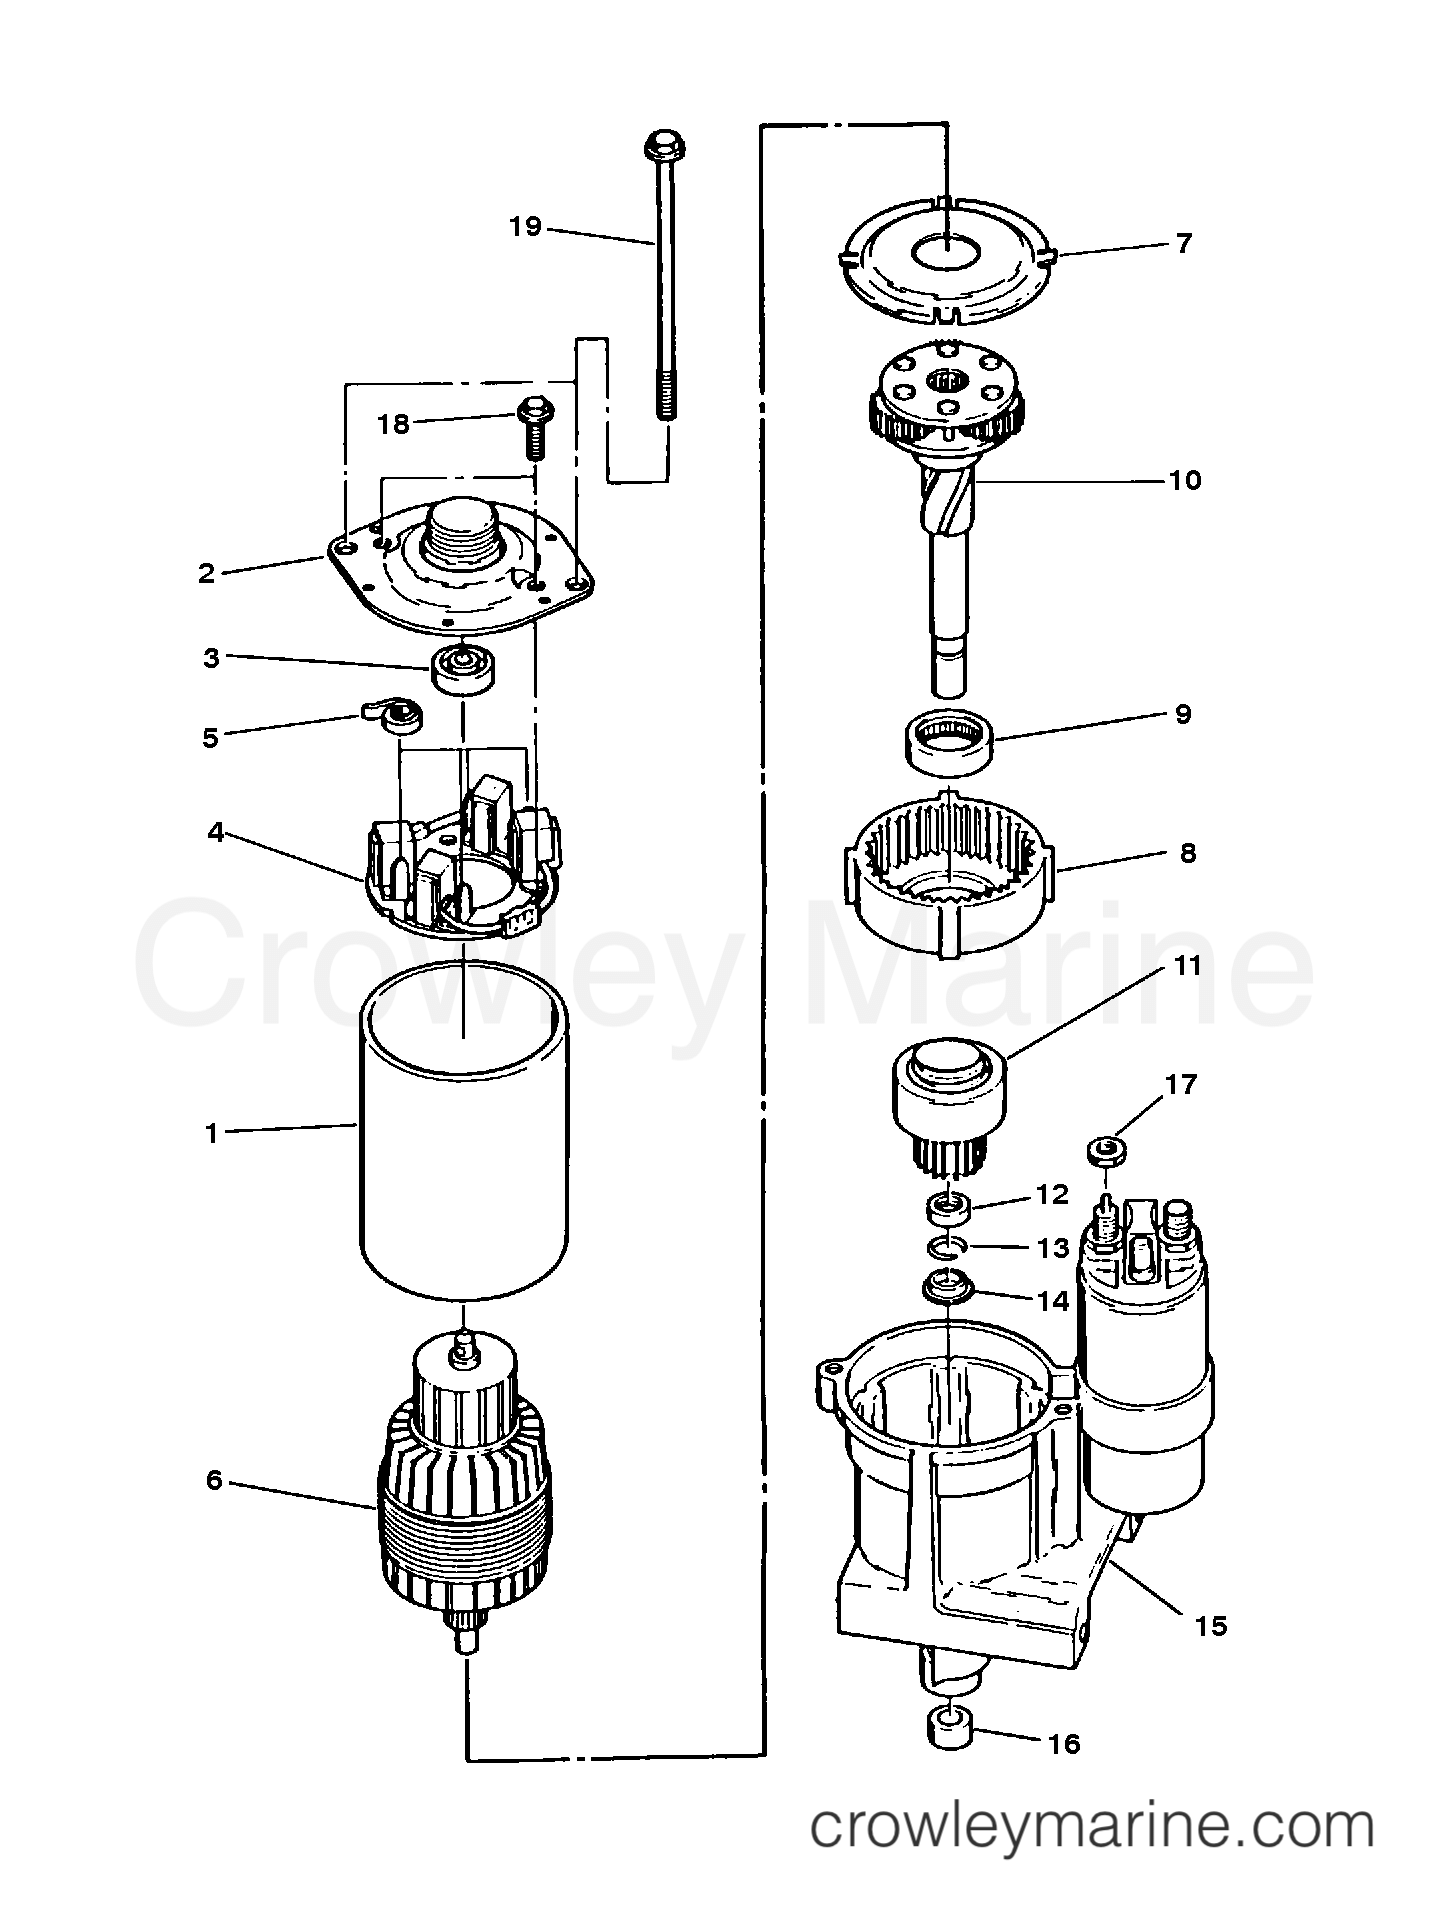 1992 Mercruiser Race Sterndrive 500 [III/IV] - 4500740EH STARTER ASSEMBLY (BRAVO PLUG IN MODELS) (50-822330A2) section